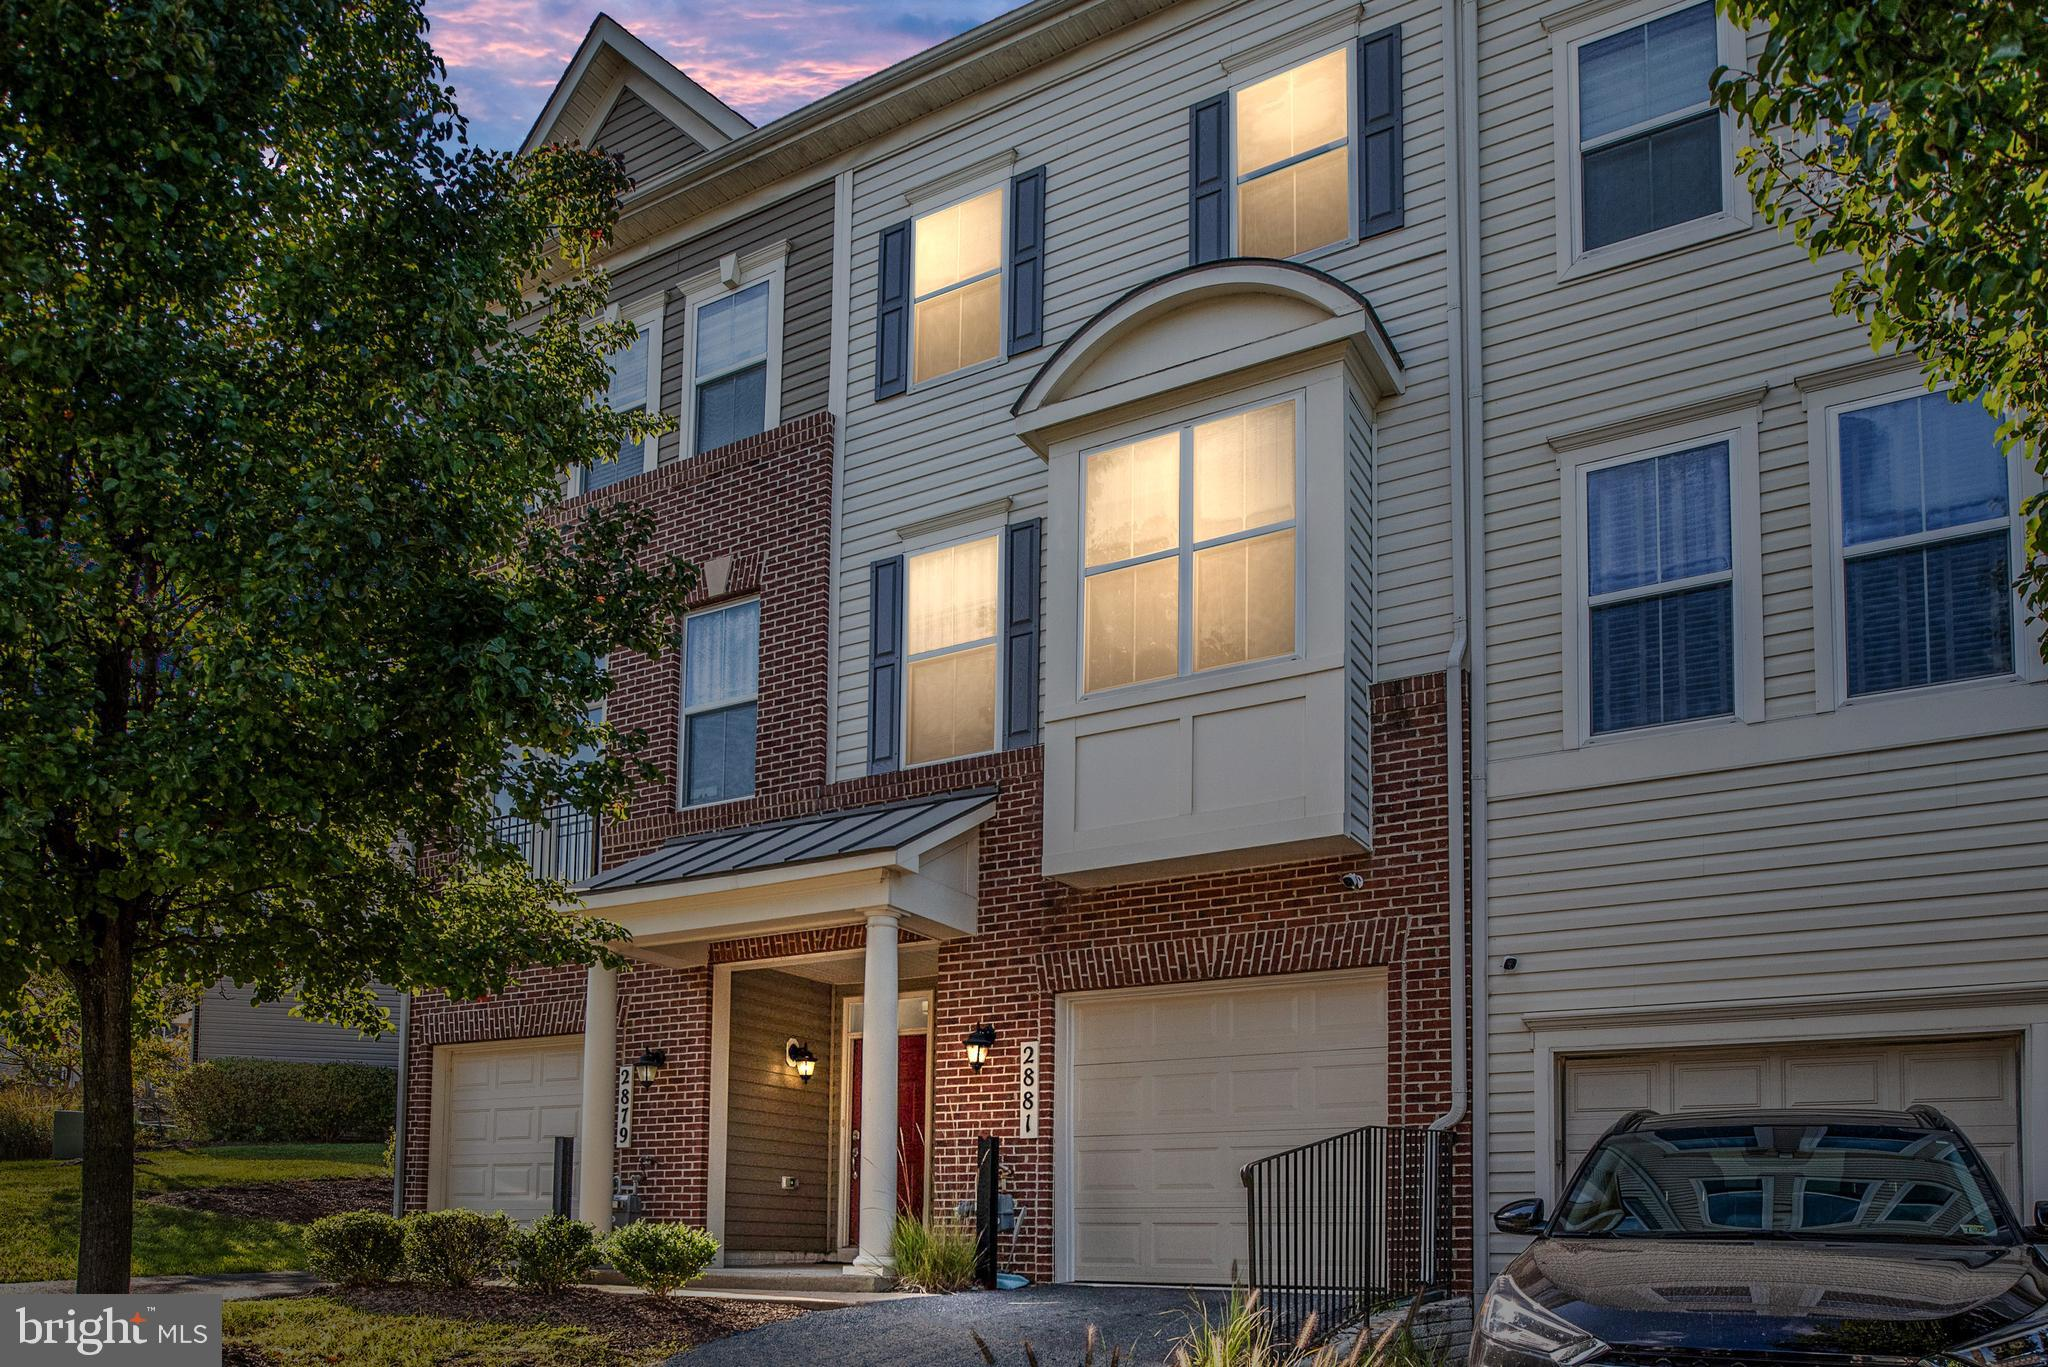 Move in ready. Beautiful three story townhome with 1 car garage. Walk into hardwood foyer with main level bedroom and full bathroom, all three levels have 9'foot celings, recess lighting throughout, excellent dimensions , all hardwood on kitchen, livingroom and diningroom level with upgrade trim. All new custom paint, new carpet in bedrooms, 30 year architectural roof, open kitchen with granite counter tops plus island , gas stove, spacious kitchen cabinets. Primary bedroom has double closets with luxury bathroom with soaker tub and separate shower with tile surround . Second bedroom has walk in closet with full bathroom. Gas heat and gas hot water heater, brand new hvac system in 2019. Premium home warranty included.